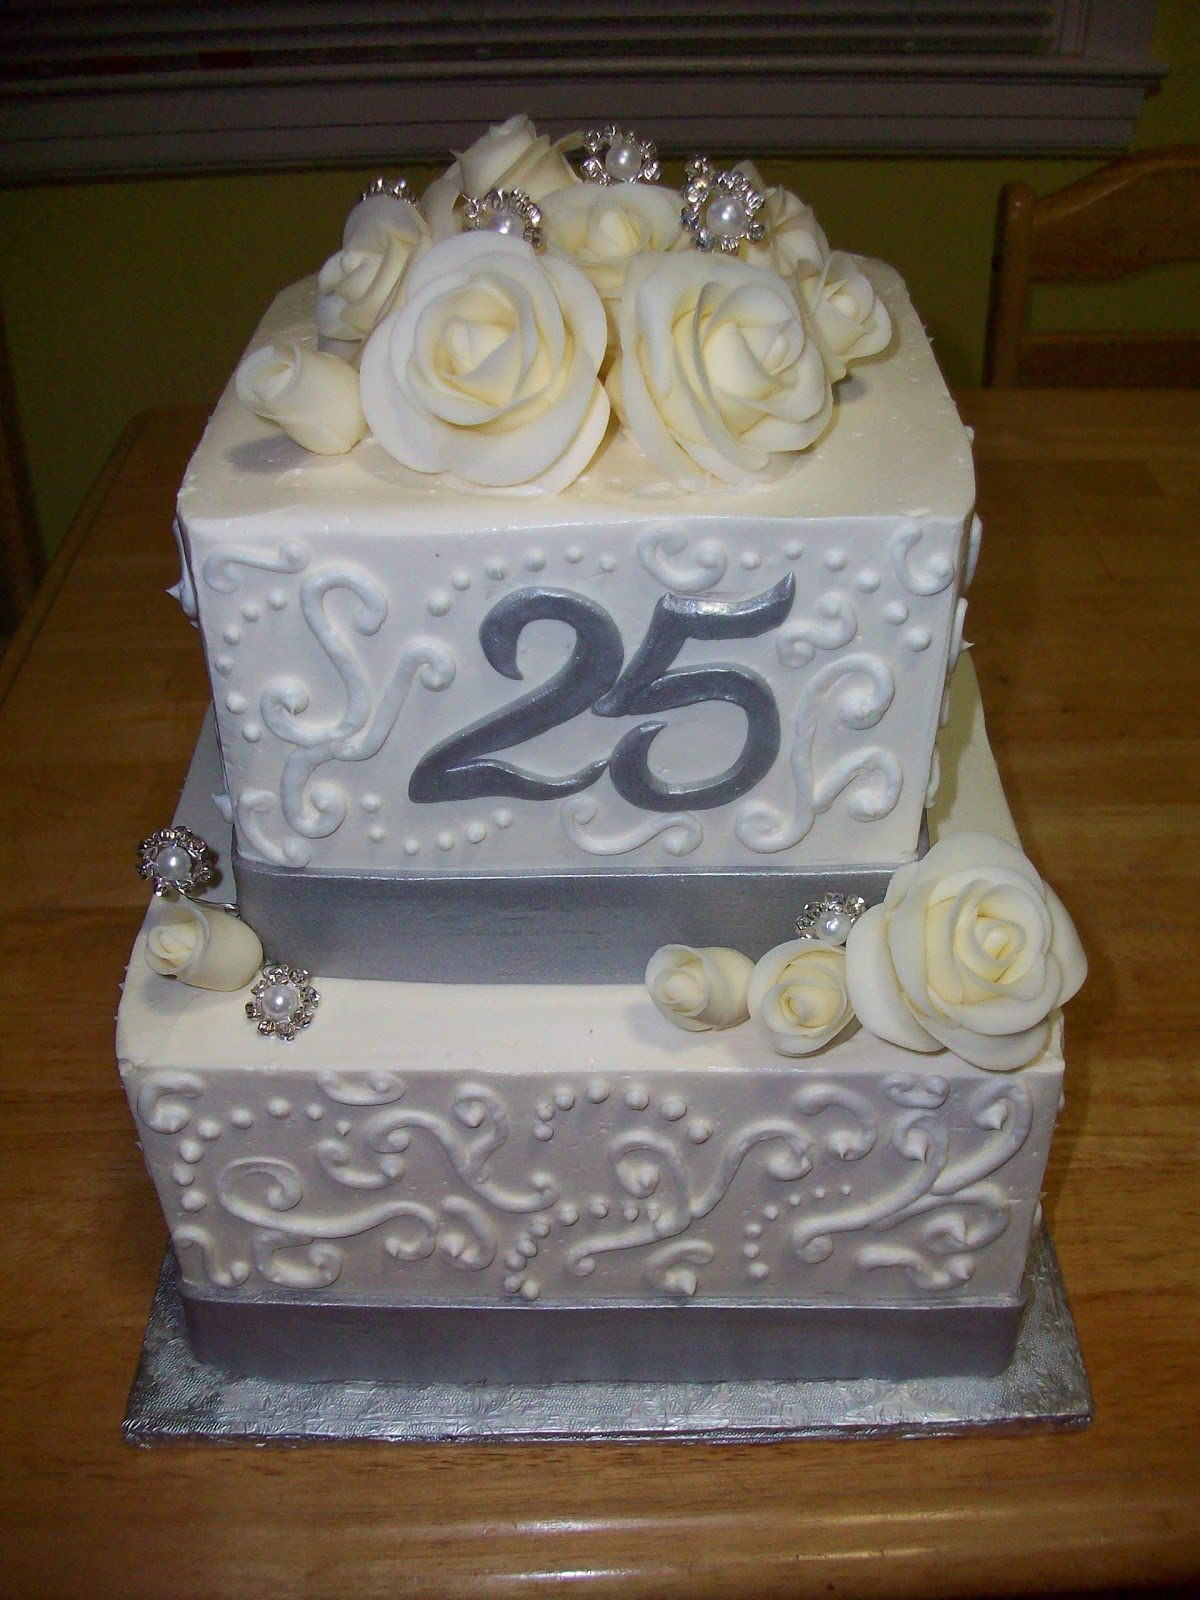 Cake Pictures For Anniversary : Cakes by Monica P: 25th Anniversary Cake